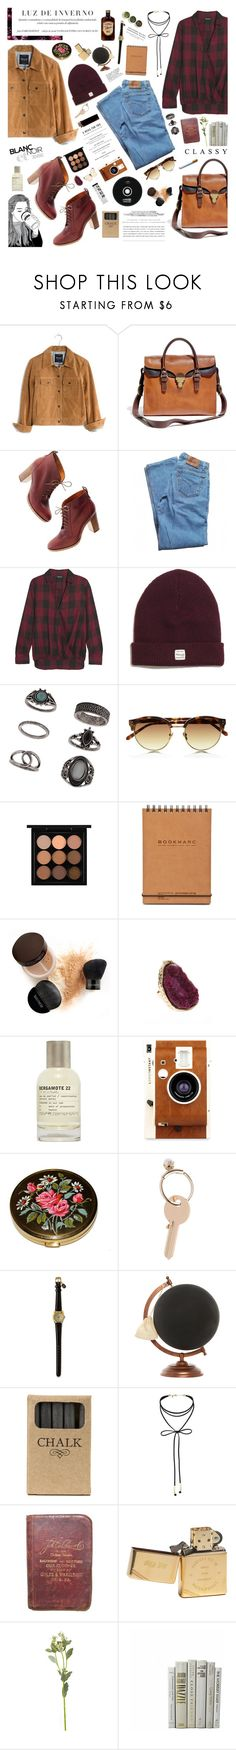 """""""Modern indie"""" by ginny-mckenzie ❤ liked on Polyvore featuring Madewell, Levi's, Topshop, Linda Farrow, MAC Cosmetics, Marc, Laura Mercier, Kerr®, Hedi Slimane and River Island"""